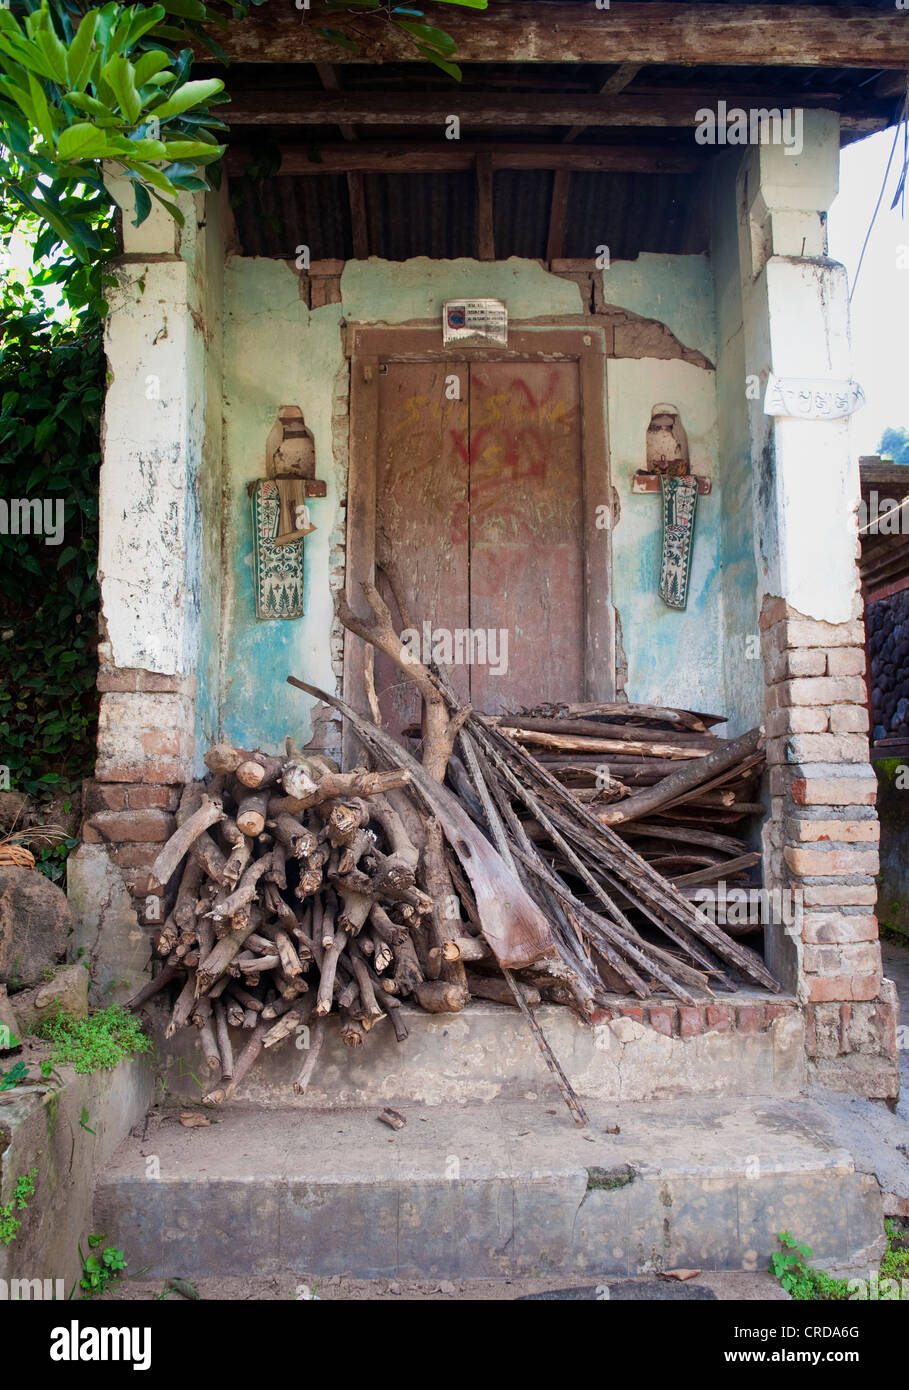 Door Fronts On The Street Of The Traditional Bali Aga Village Of Stock Photo Alamy